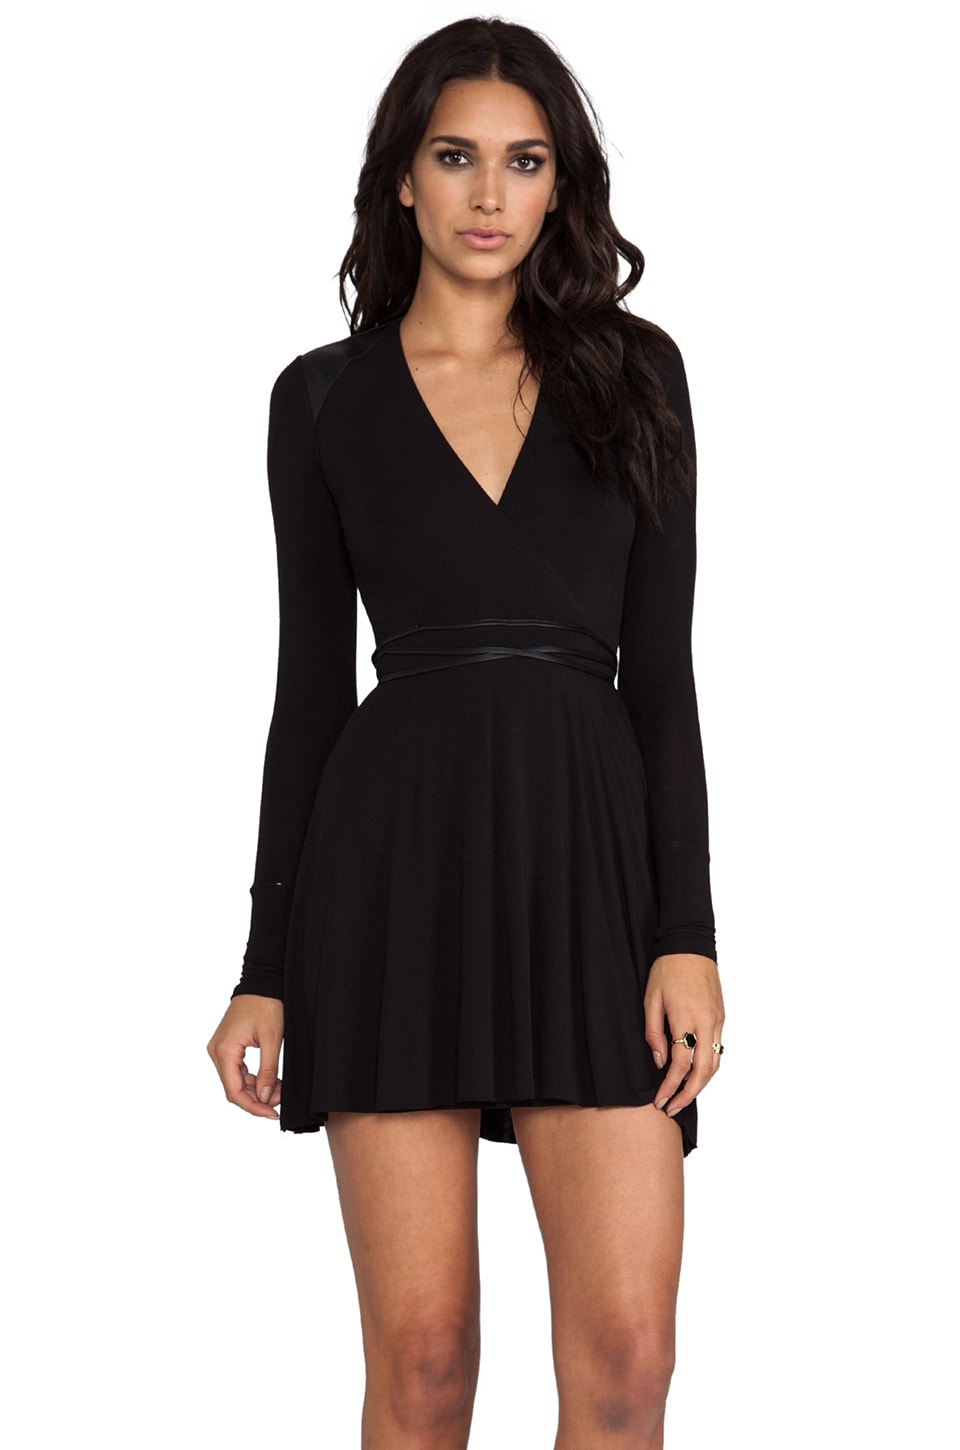 Bailey 44 My Own Heart's Heart Dress in Black